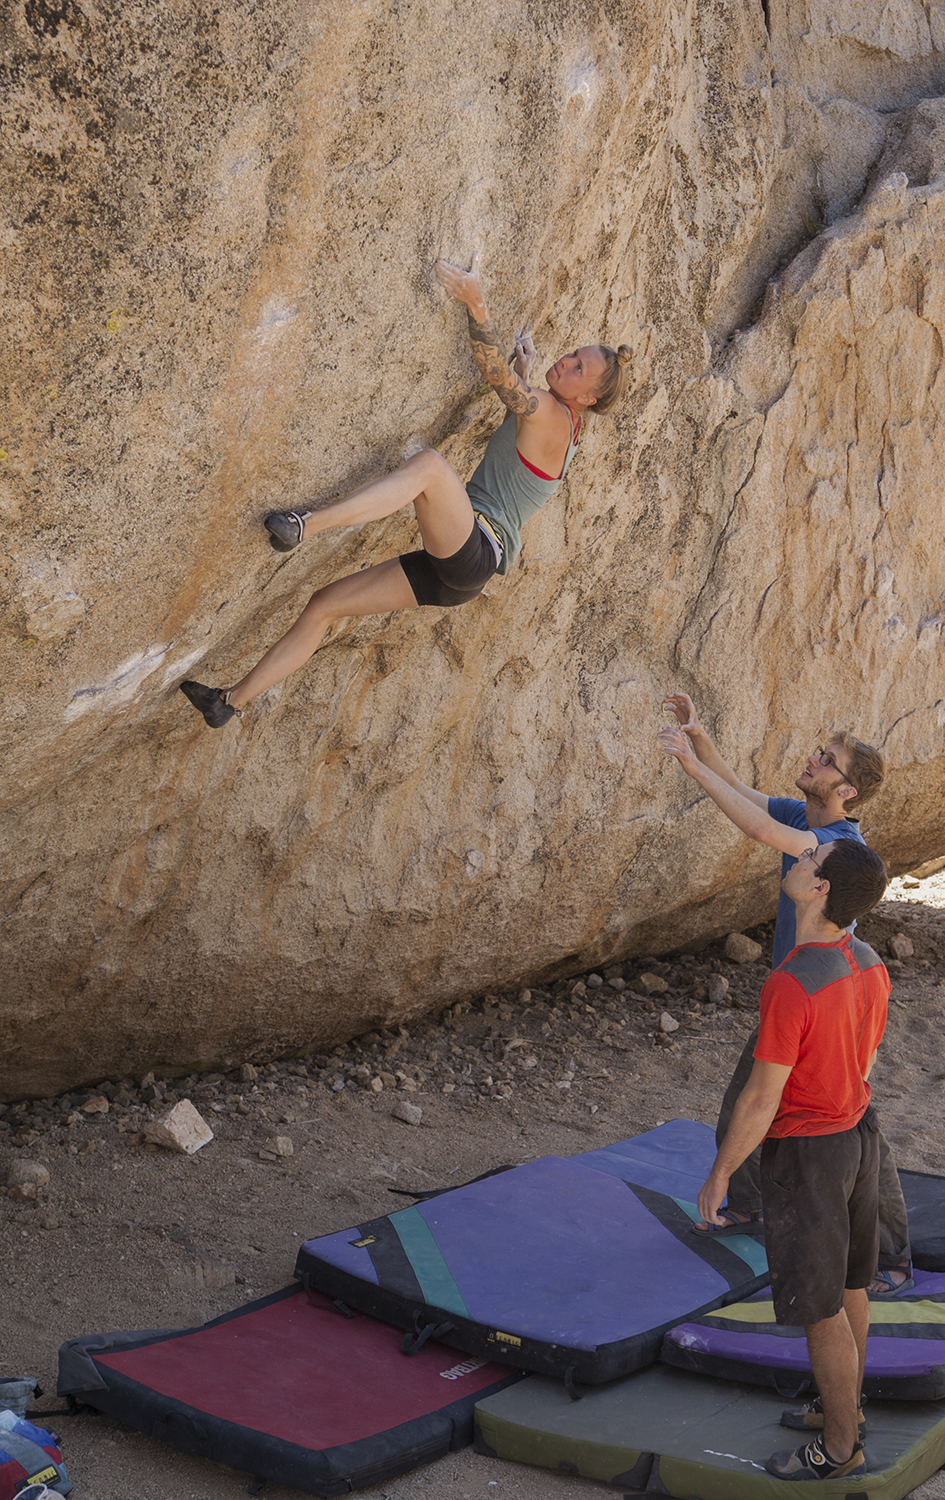 High Plains Drifter (v7). Bishop, CA. photo by Jeremy Bini.